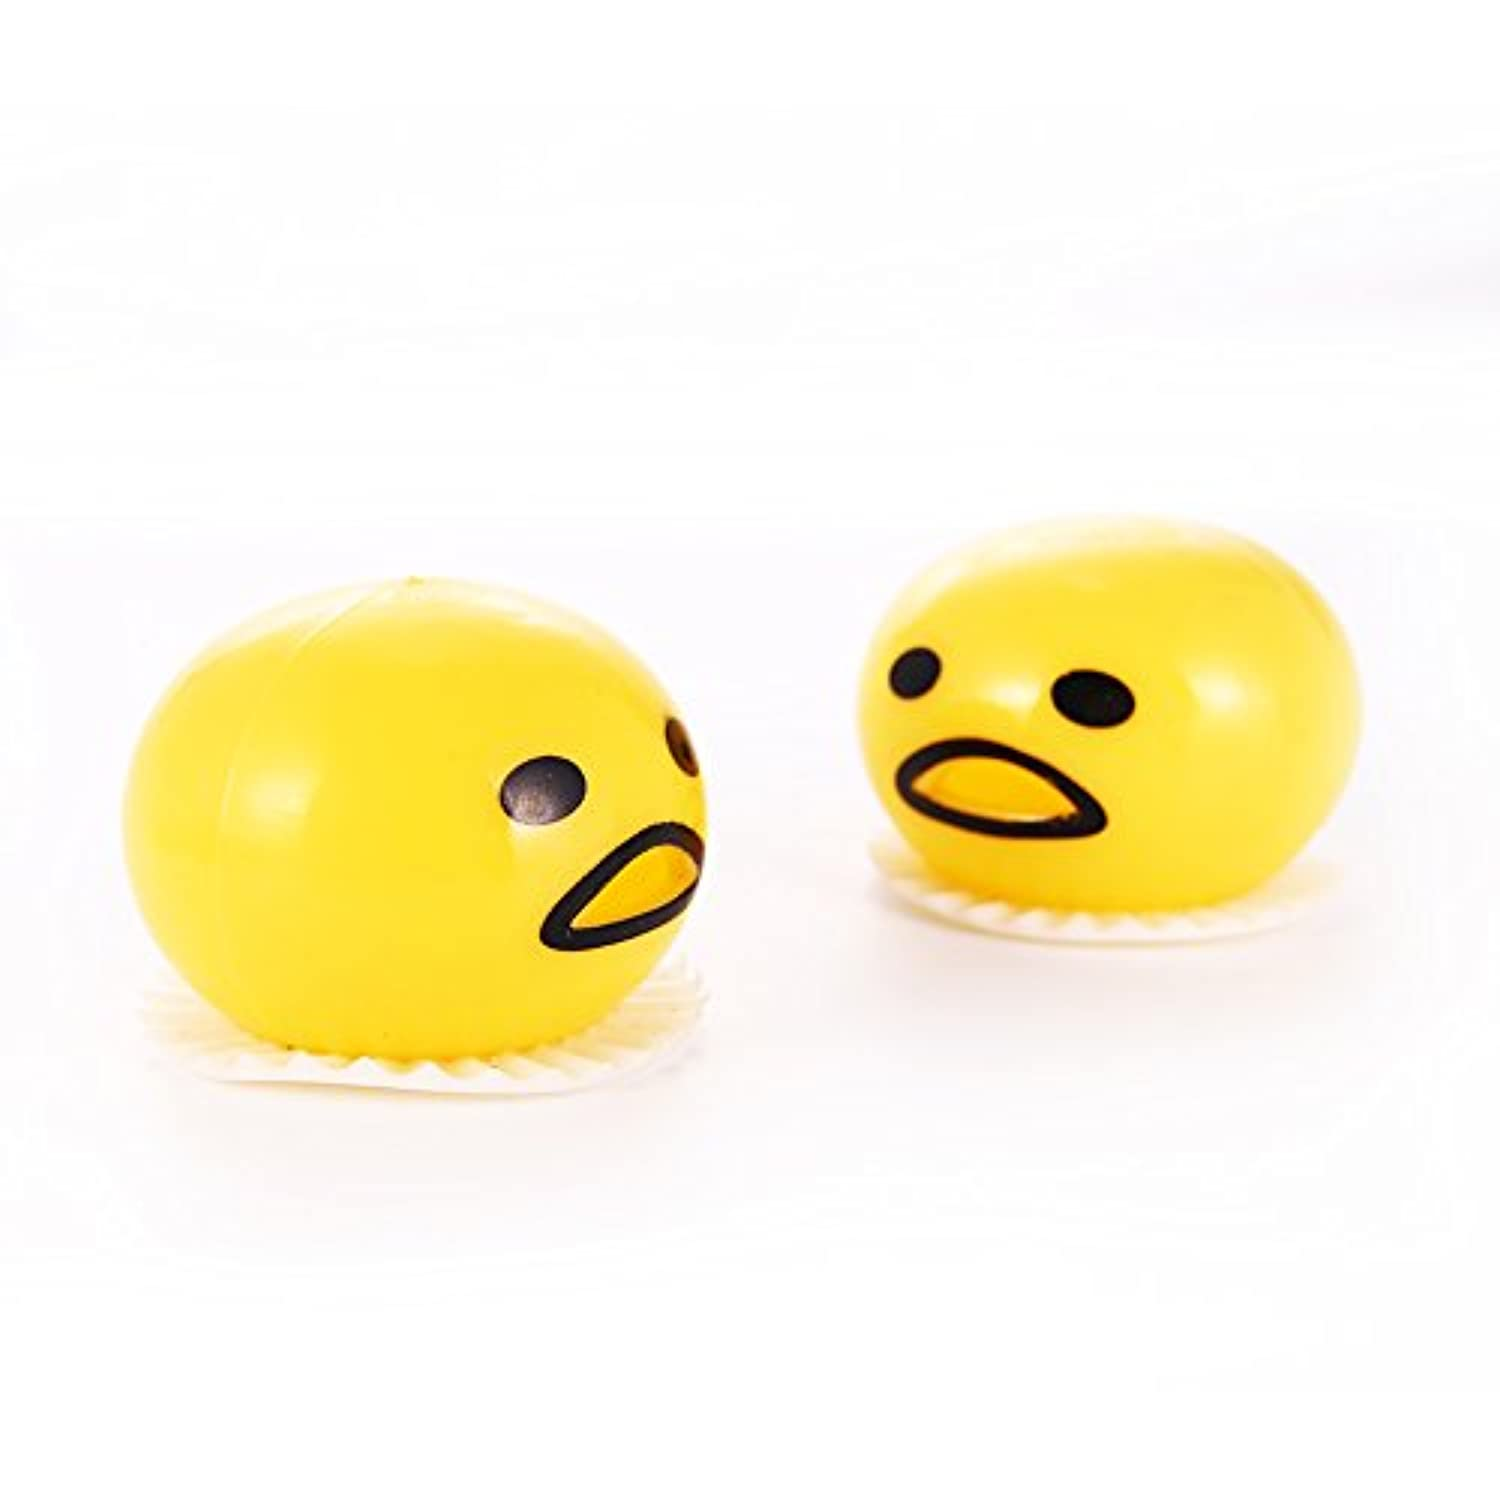 [Acefun]Acefun 24 Pieces Vomiting & Sucking Lazy Egg Yolk Vent Tricky Gag Toy Stress Relief Toys MX-TO2122U9VNY9-224 [並行輸入品]